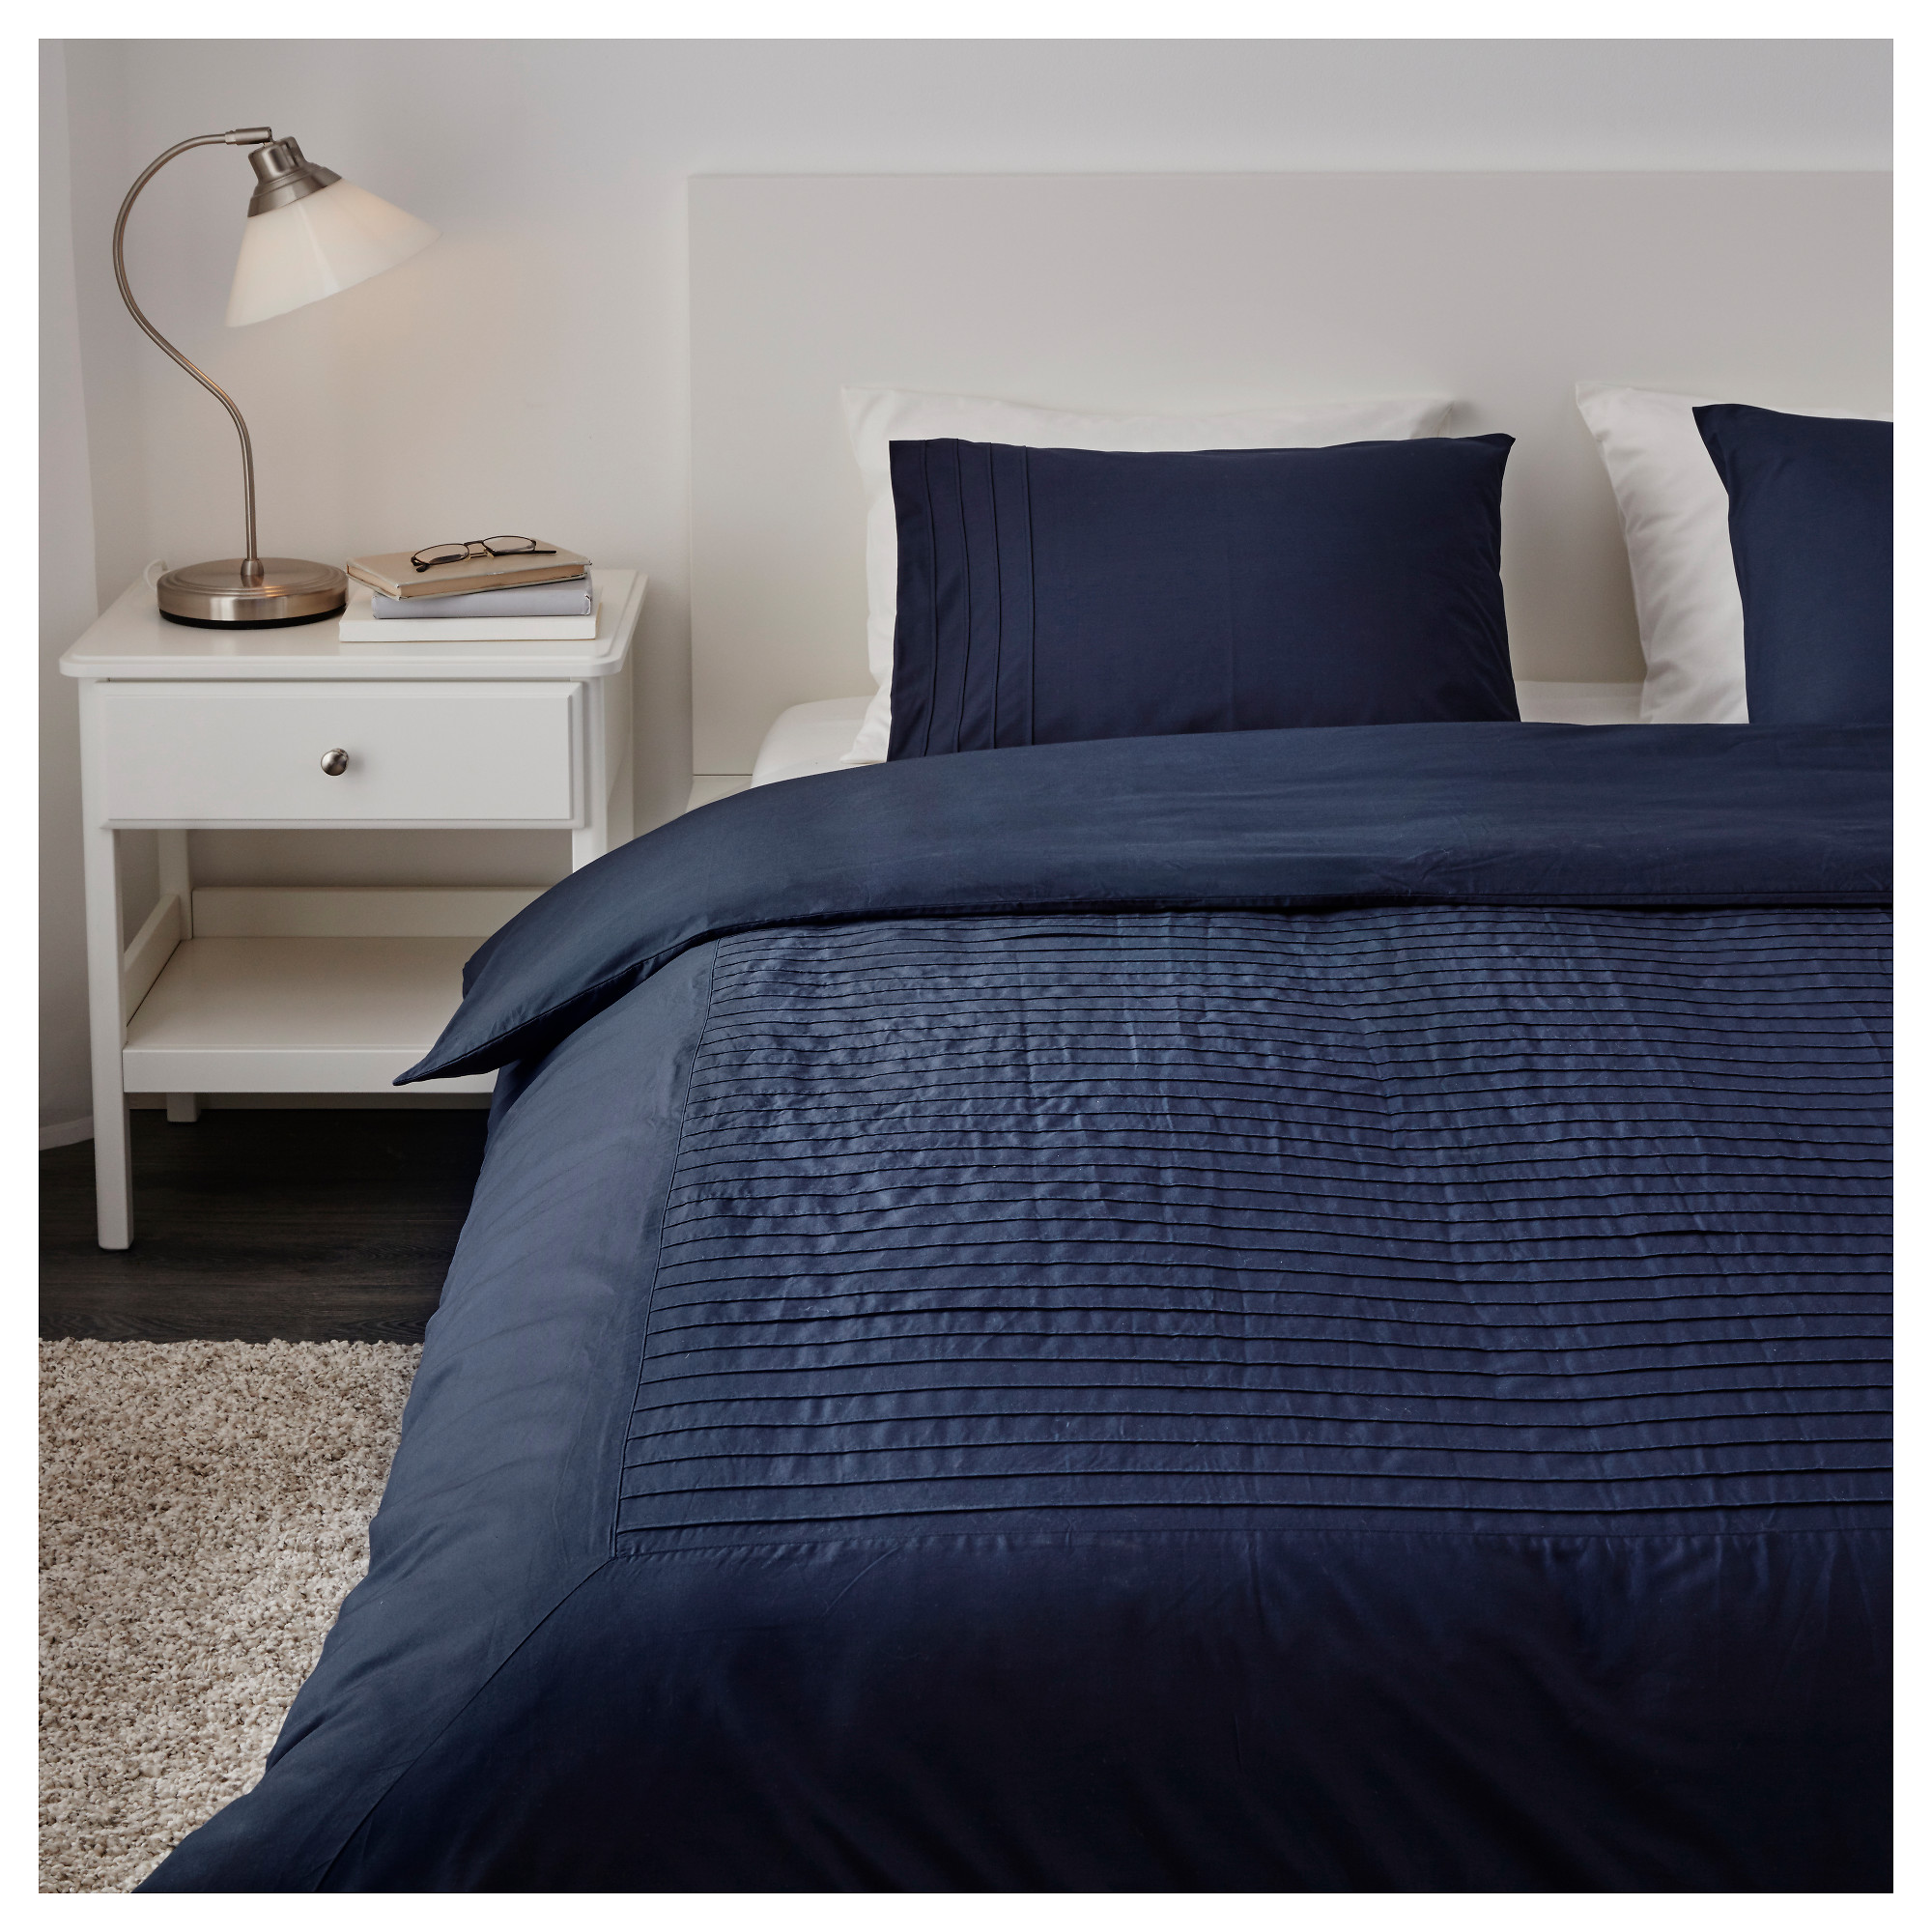 Alvine StrÅ Duvet Cover And Pillowcase S Full Queen Double Ikea